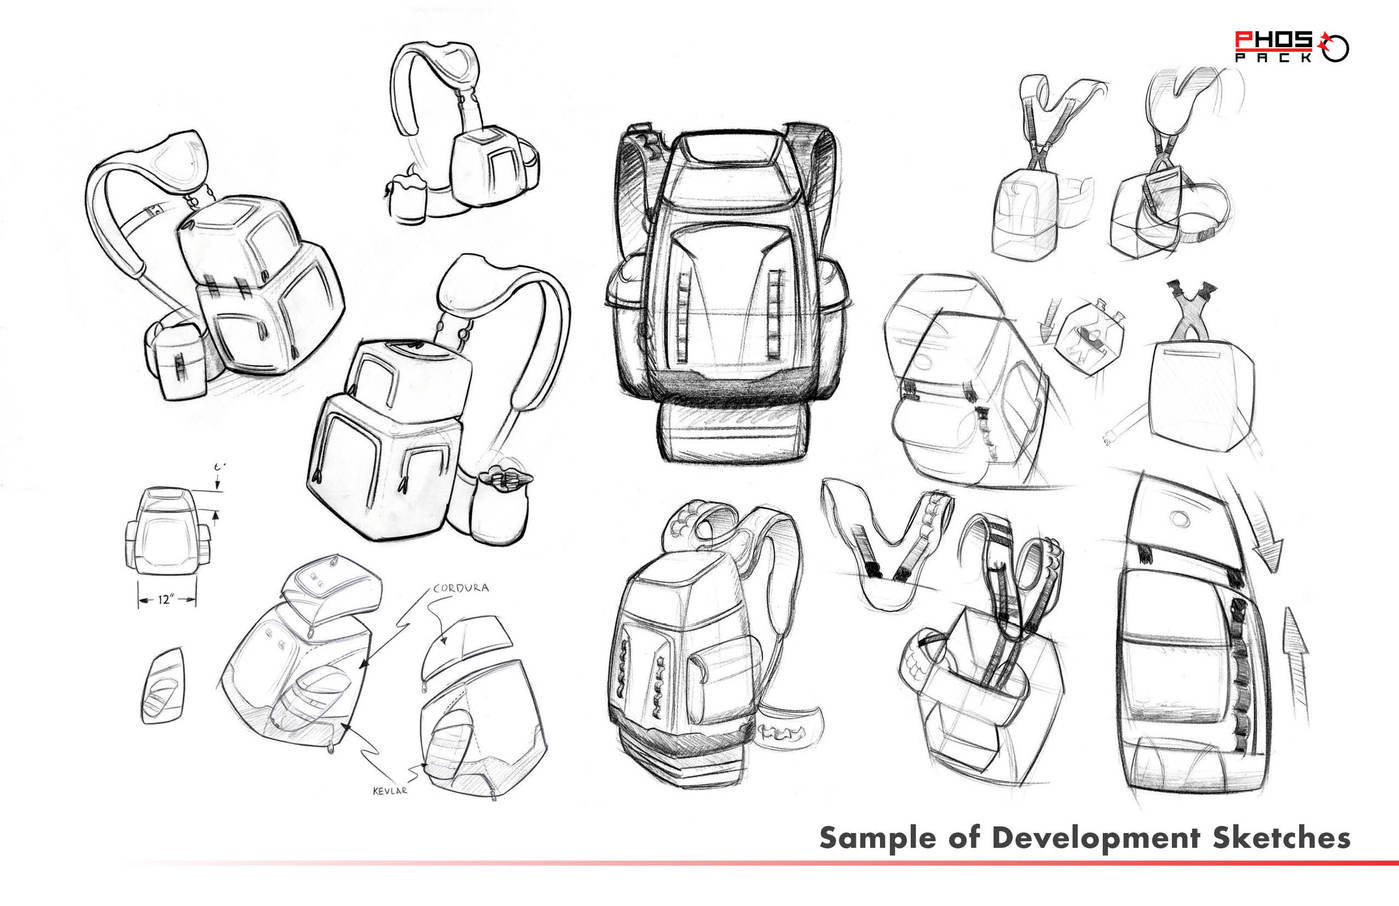 INDUSTRIAL DESIGN: Wildland firefighting pack system by